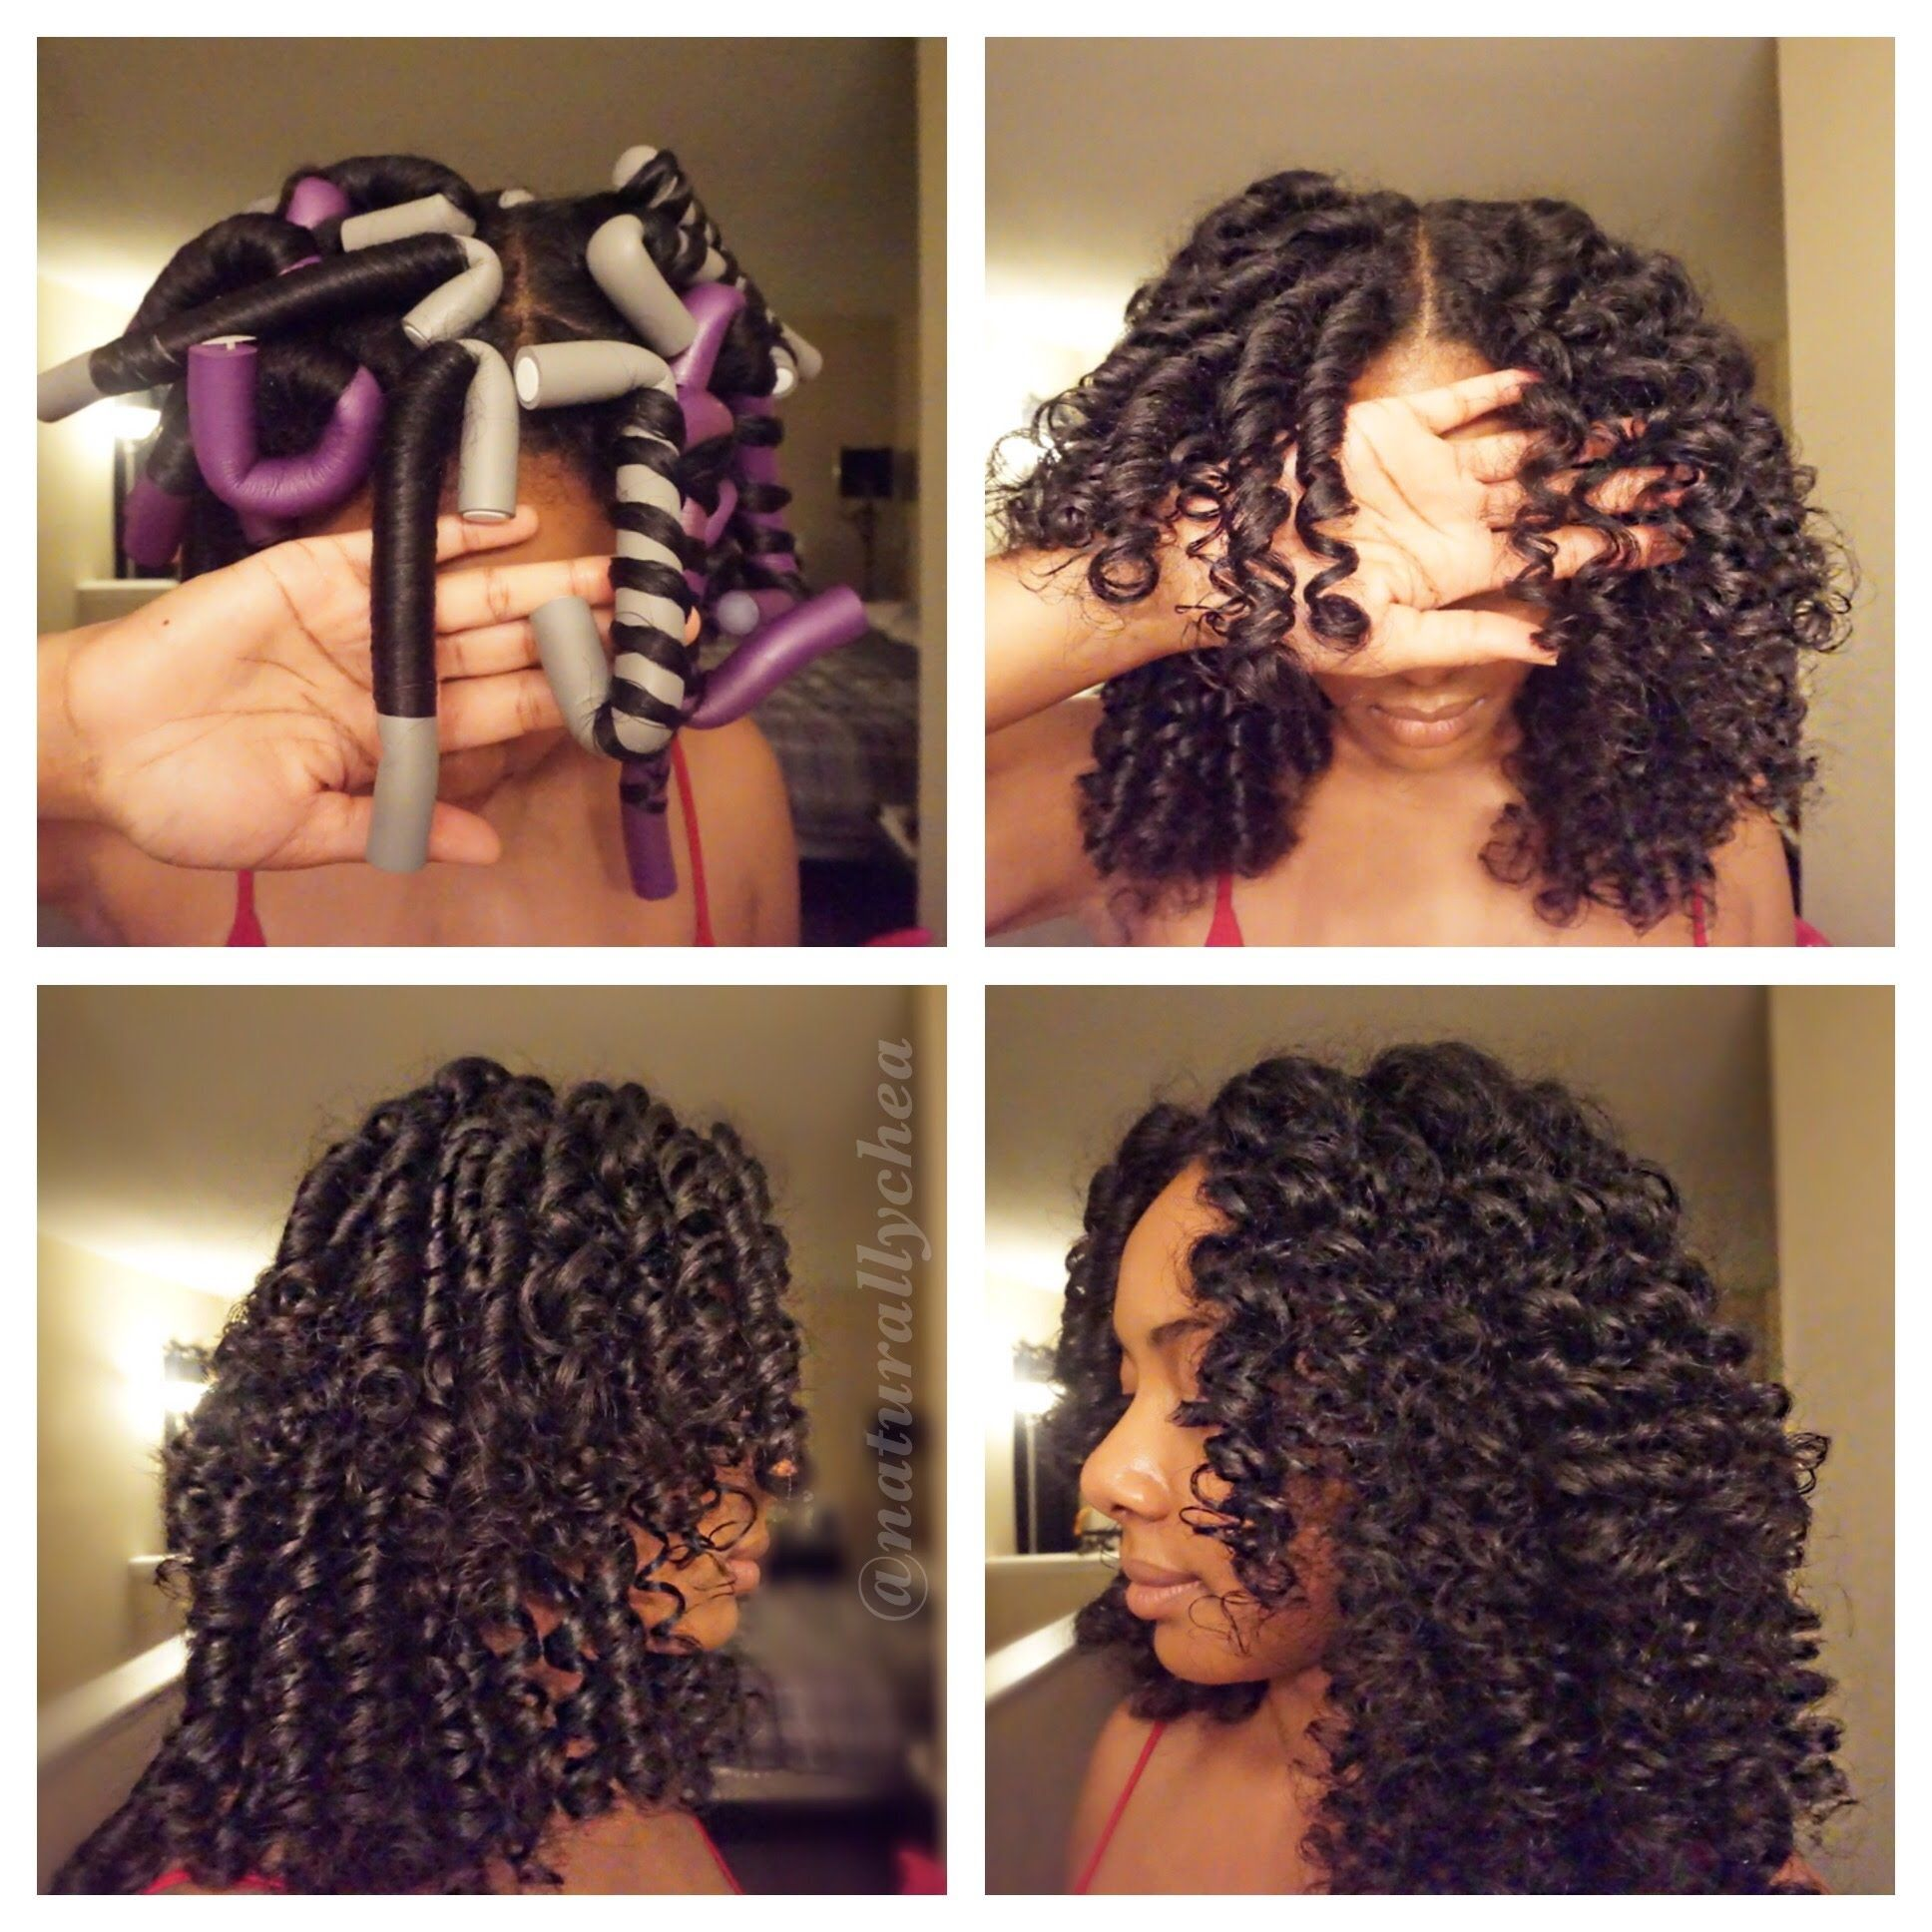 How to Roll Flexi Rods on Natural Hair Long hair styles